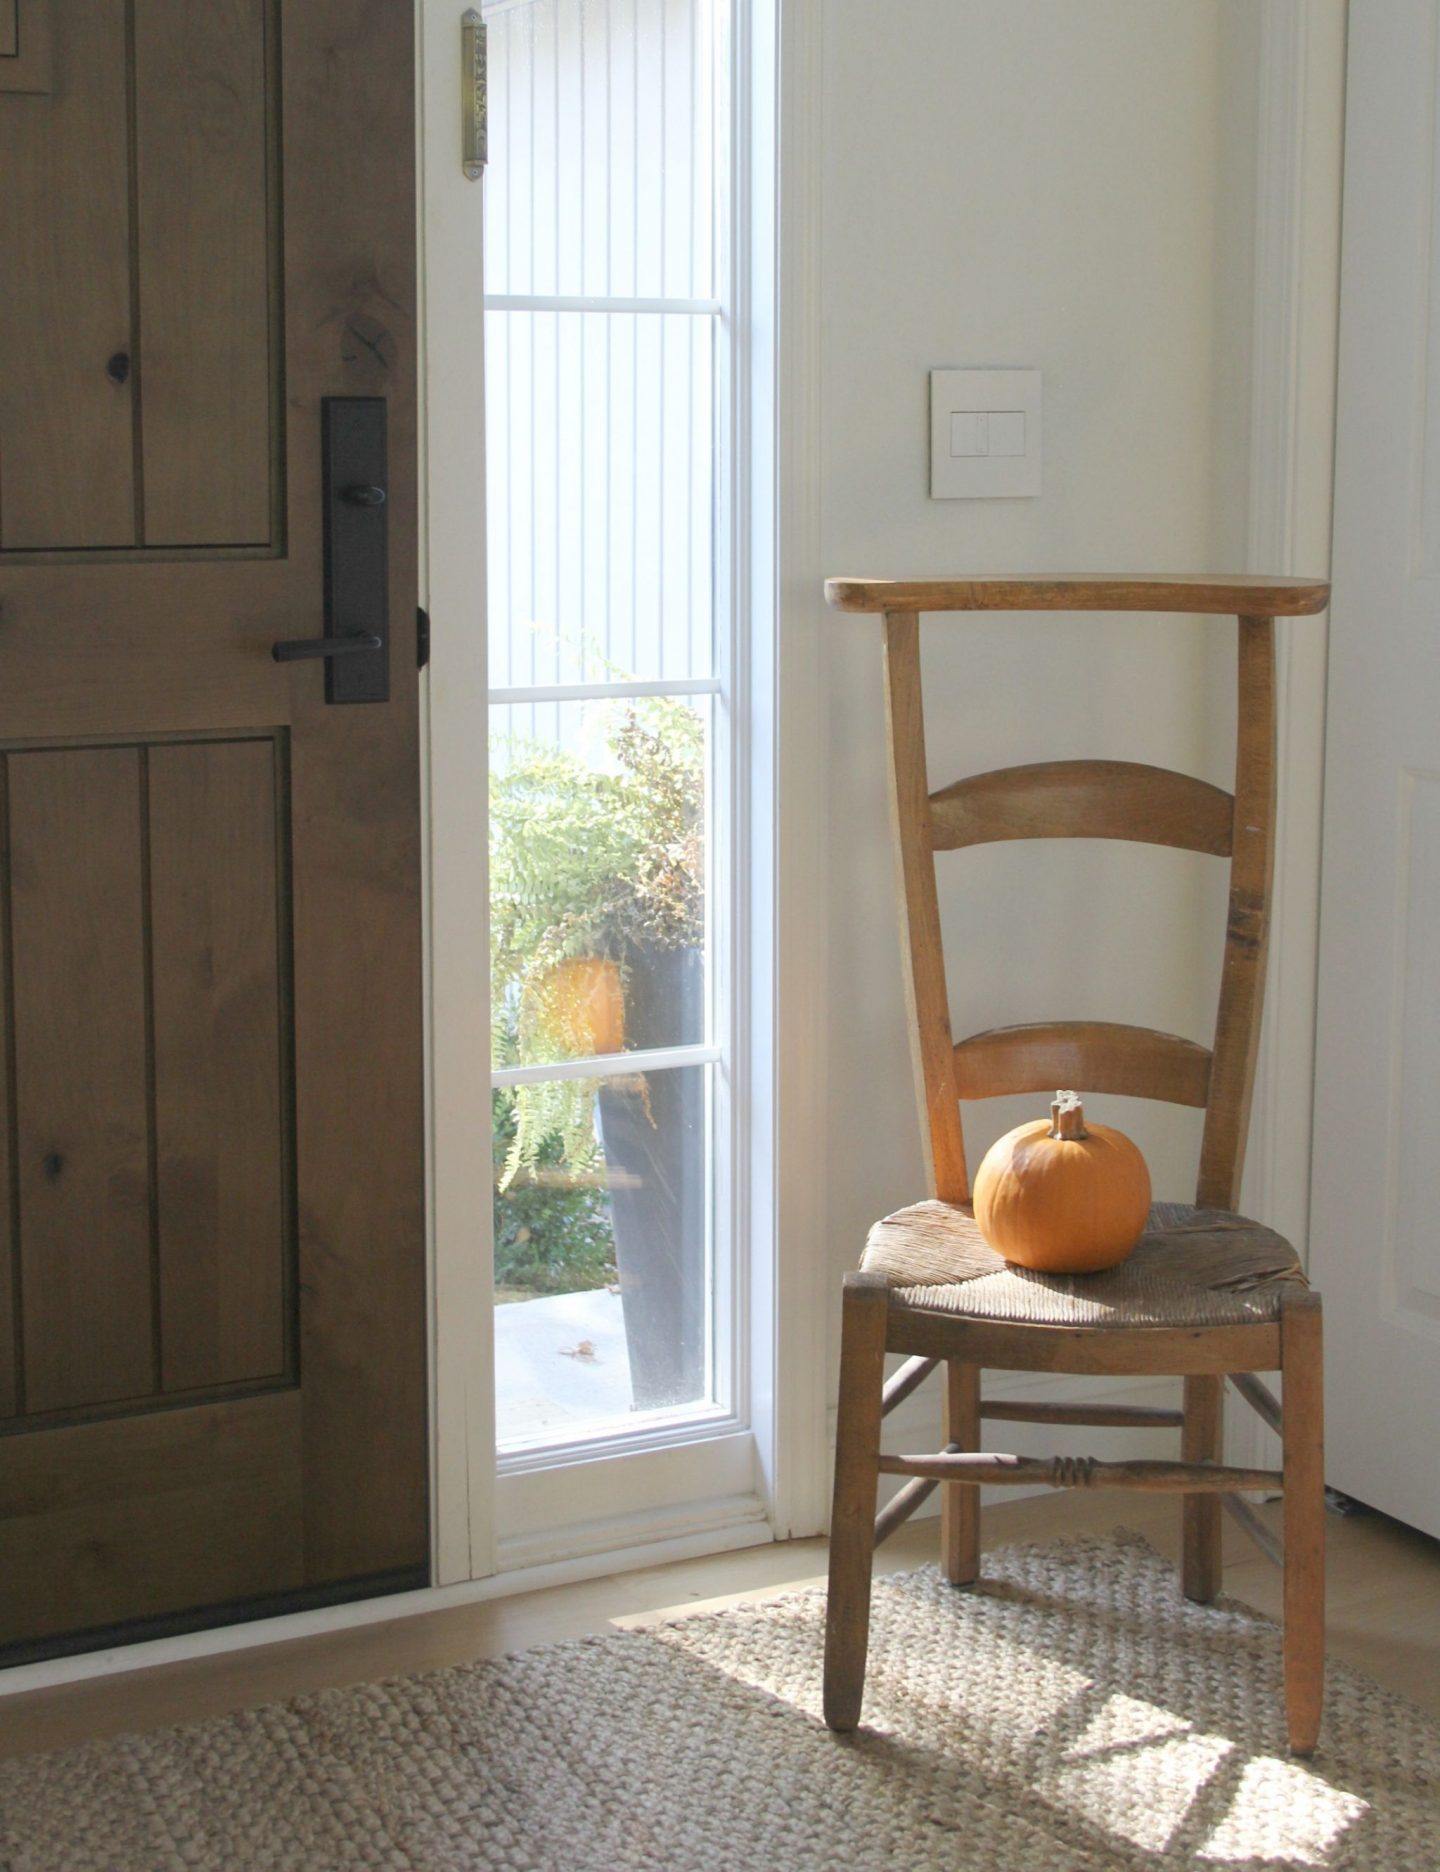 French prayer chair with orange fall pumpkin my entry - Hello Lovely Studio. Pretty Pumpkin Decor and Recipes [in case you're ready to FALL in Love With Autumn].